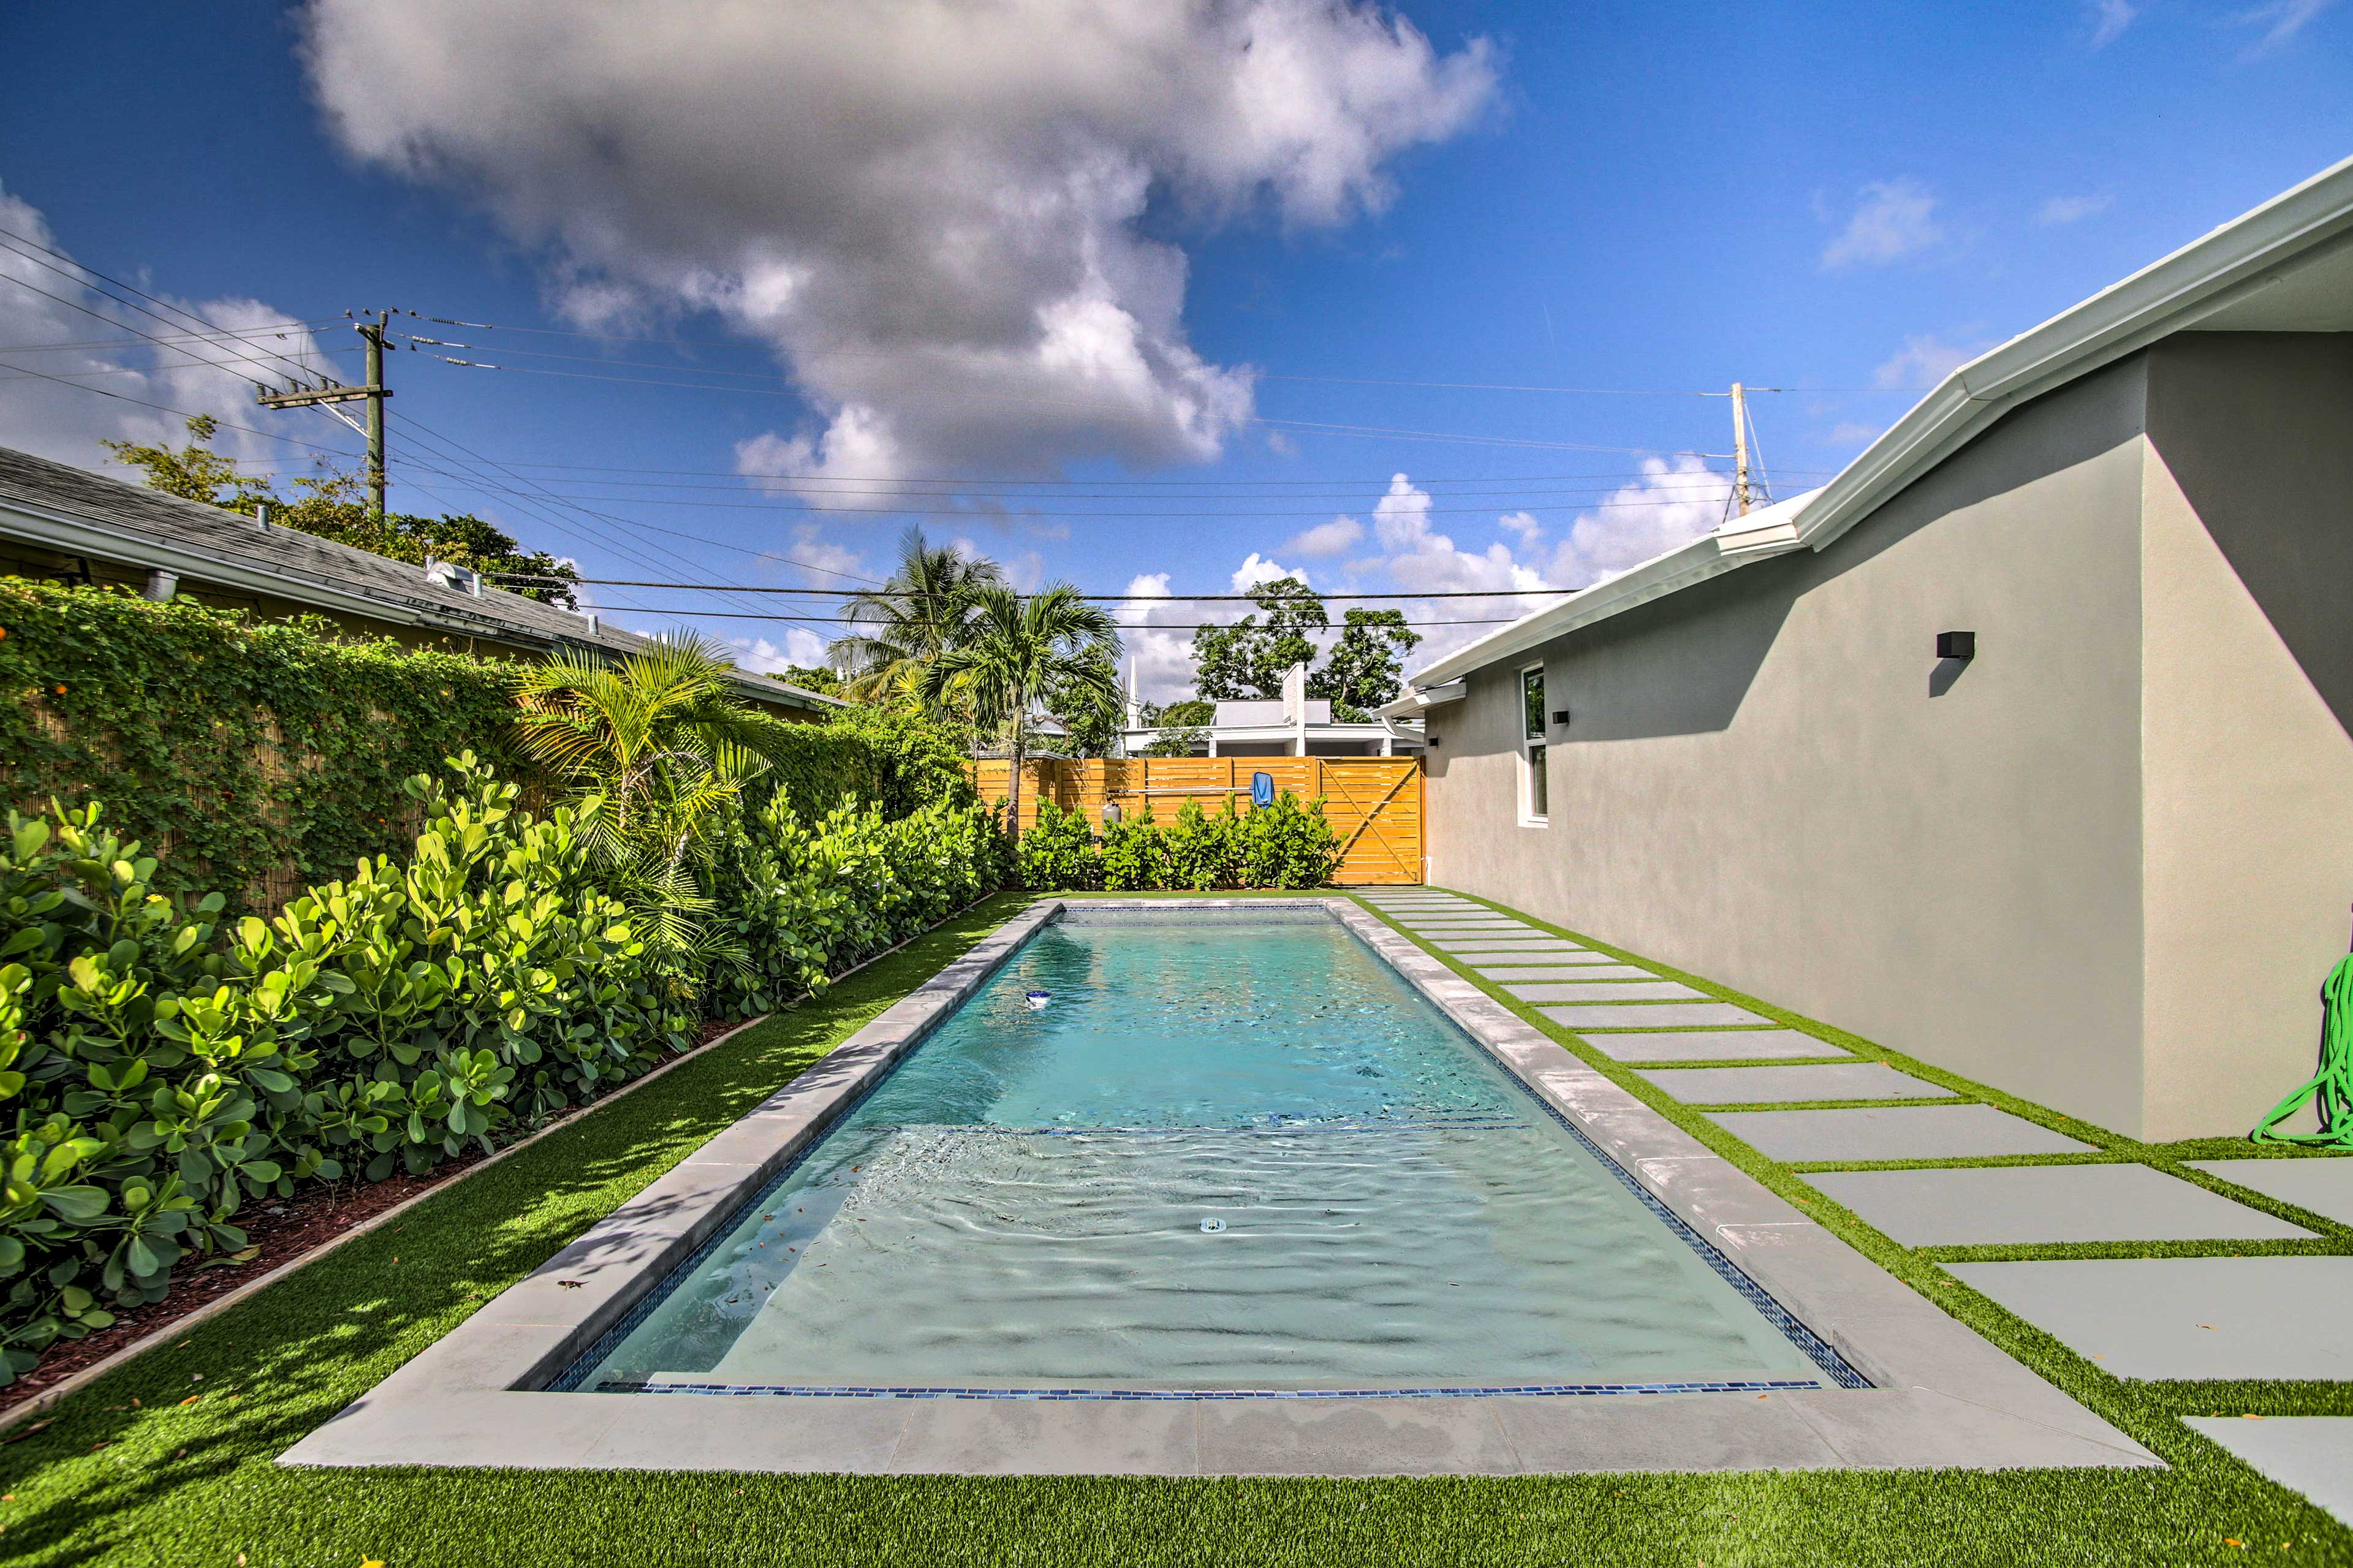 During your stay, enjoy access to a shared yard, pool and hot tub.